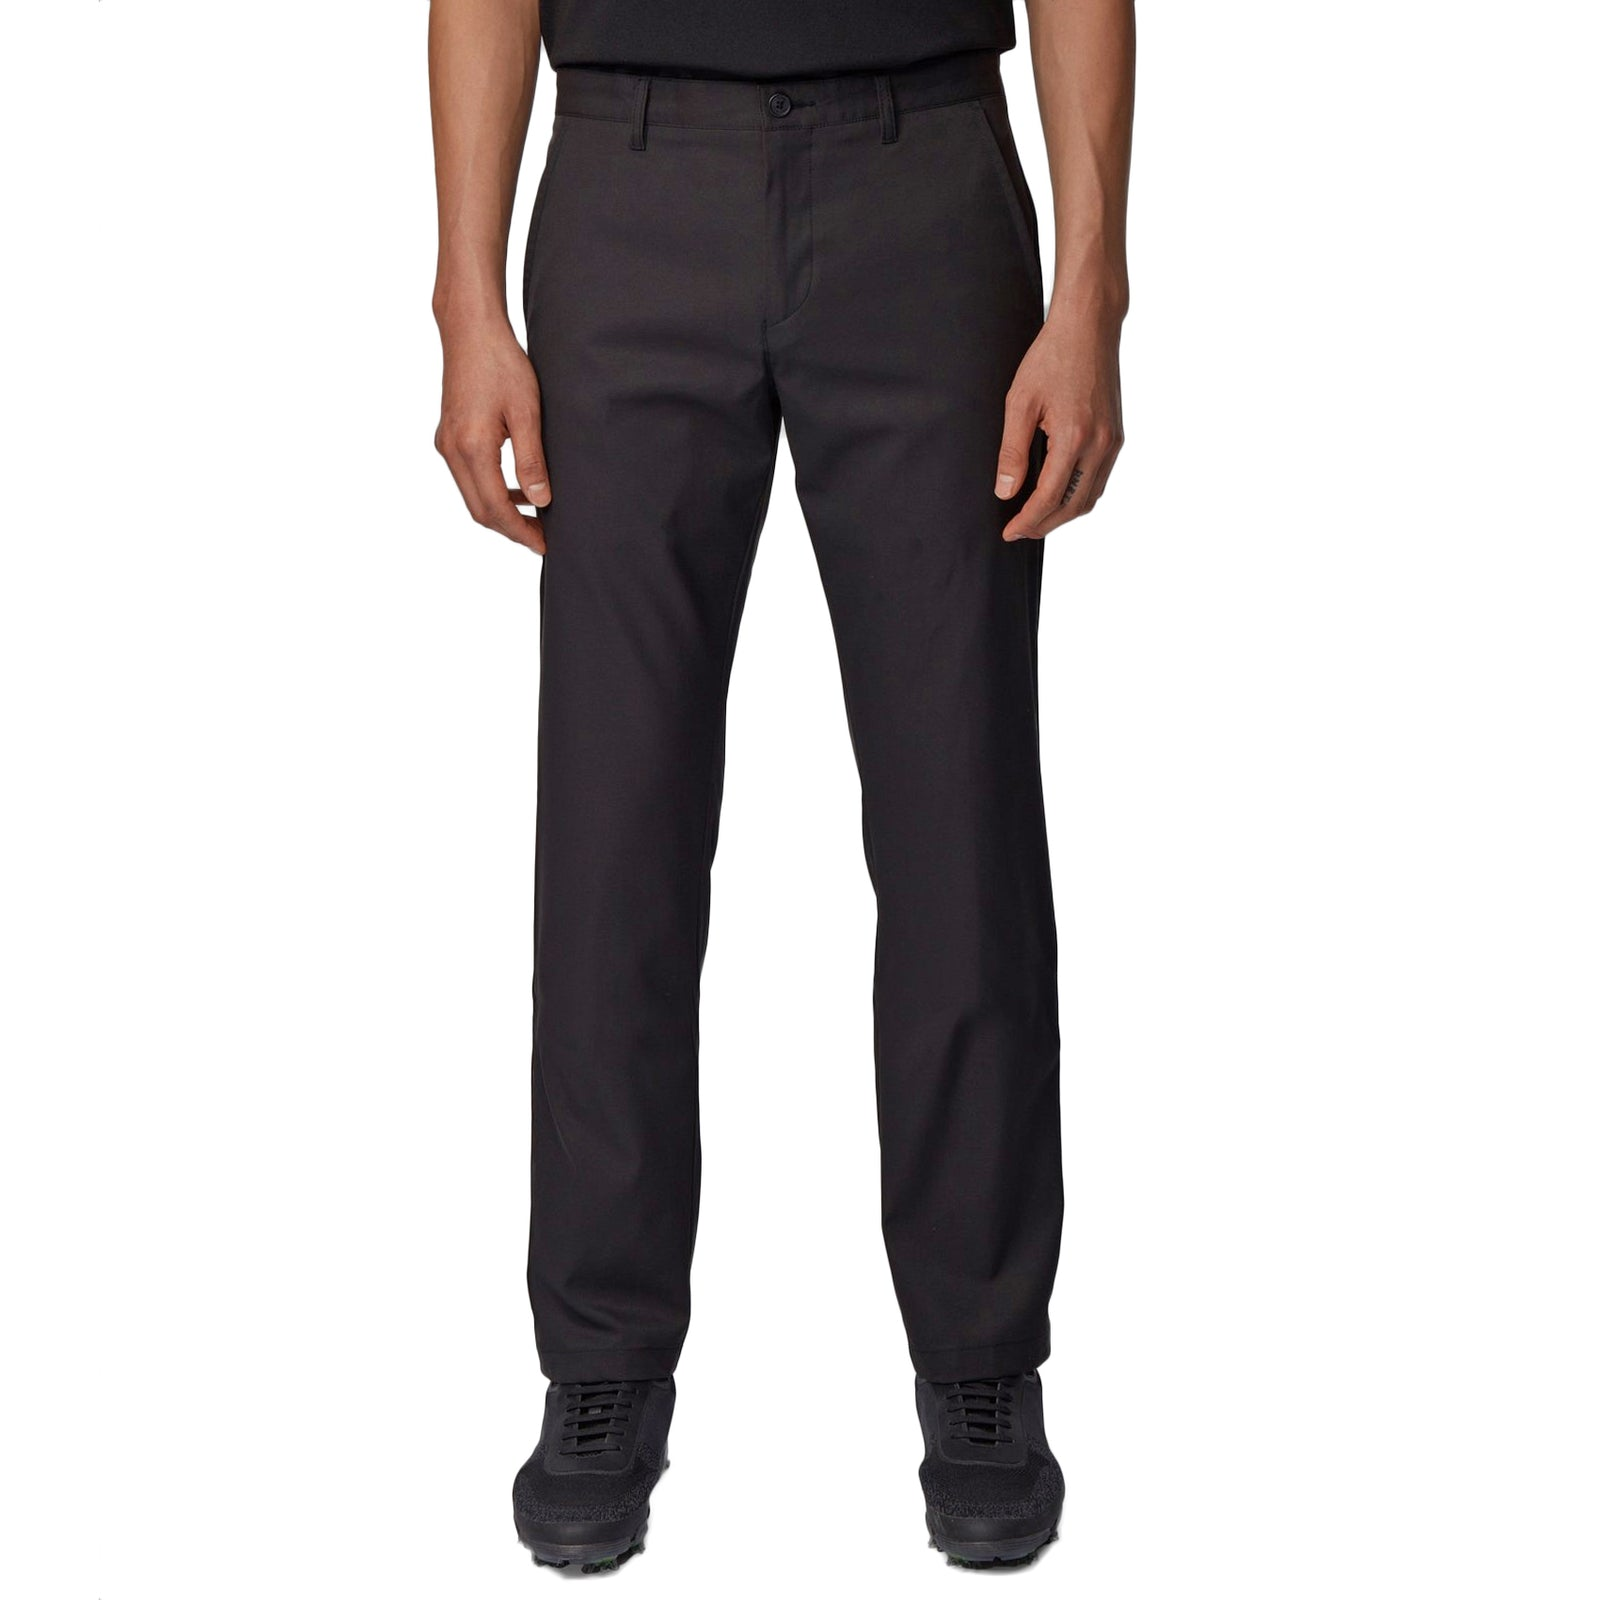 Hugo Boss Hakan 9-2 Golf Pants - Black